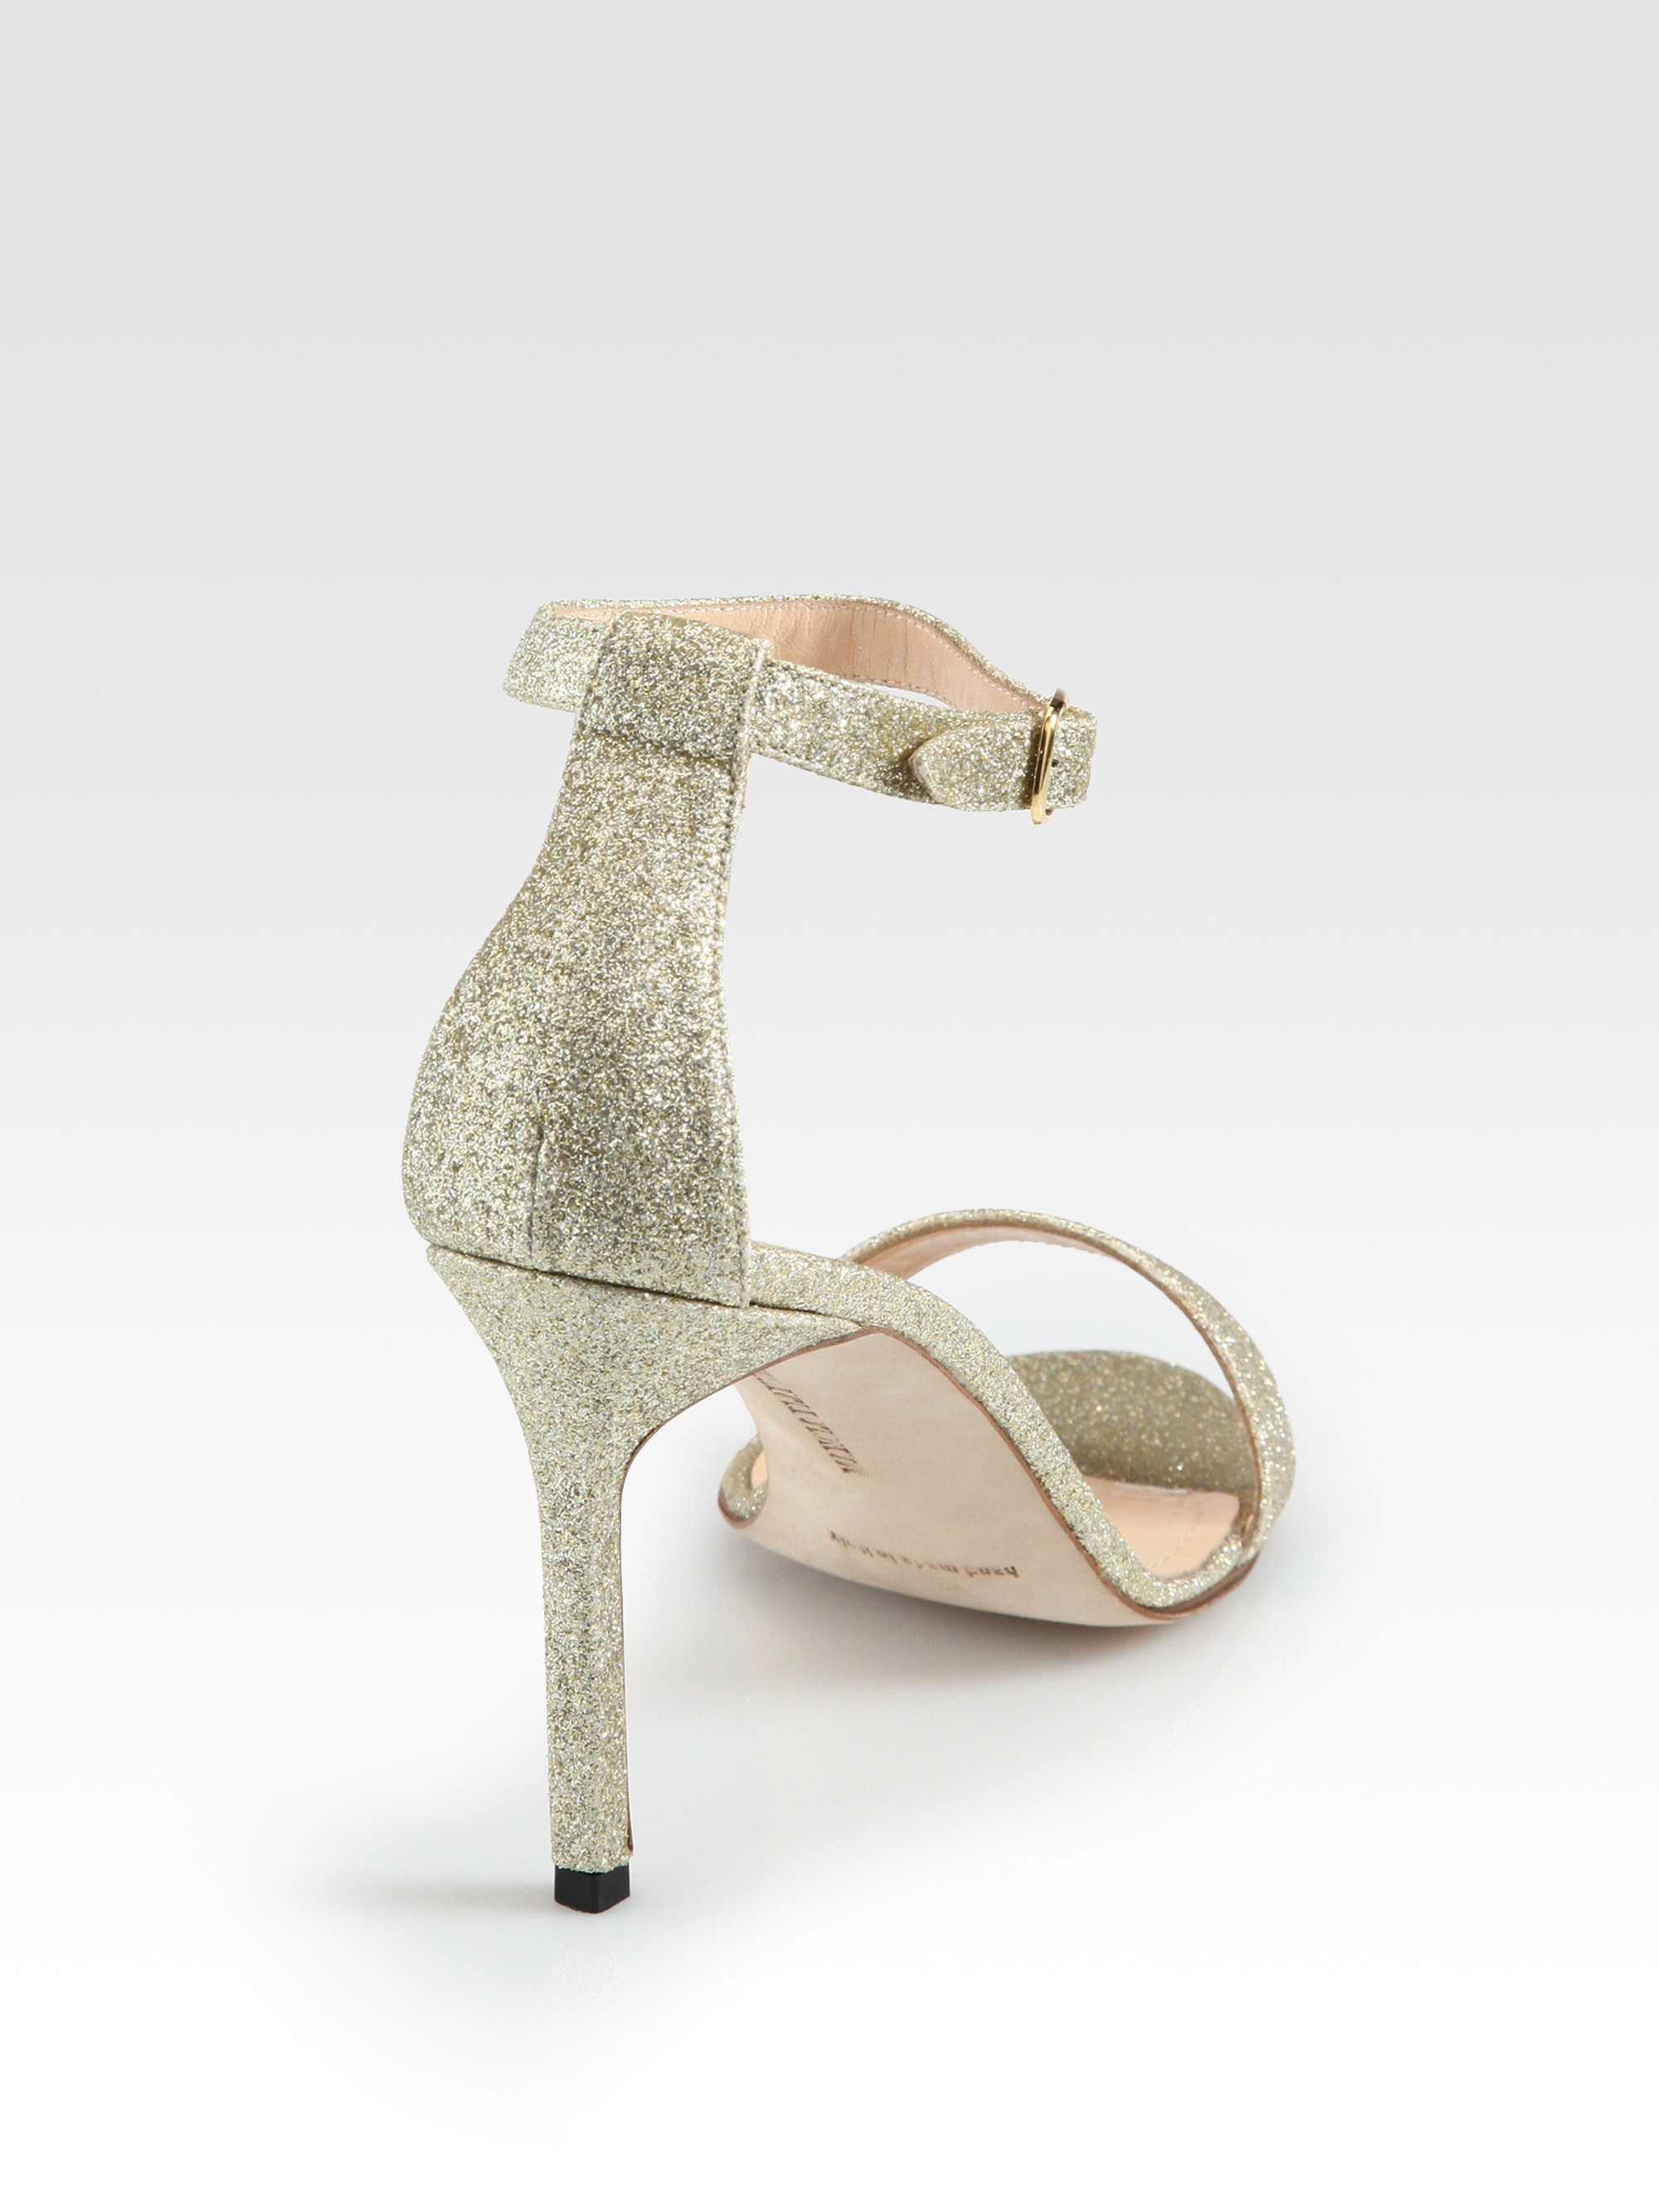 Manolo Blahnik Chaos Glitter Sandals shopping online high quality low shipping fee for sale low price cheap online cheap sale with credit card 2QEgUF